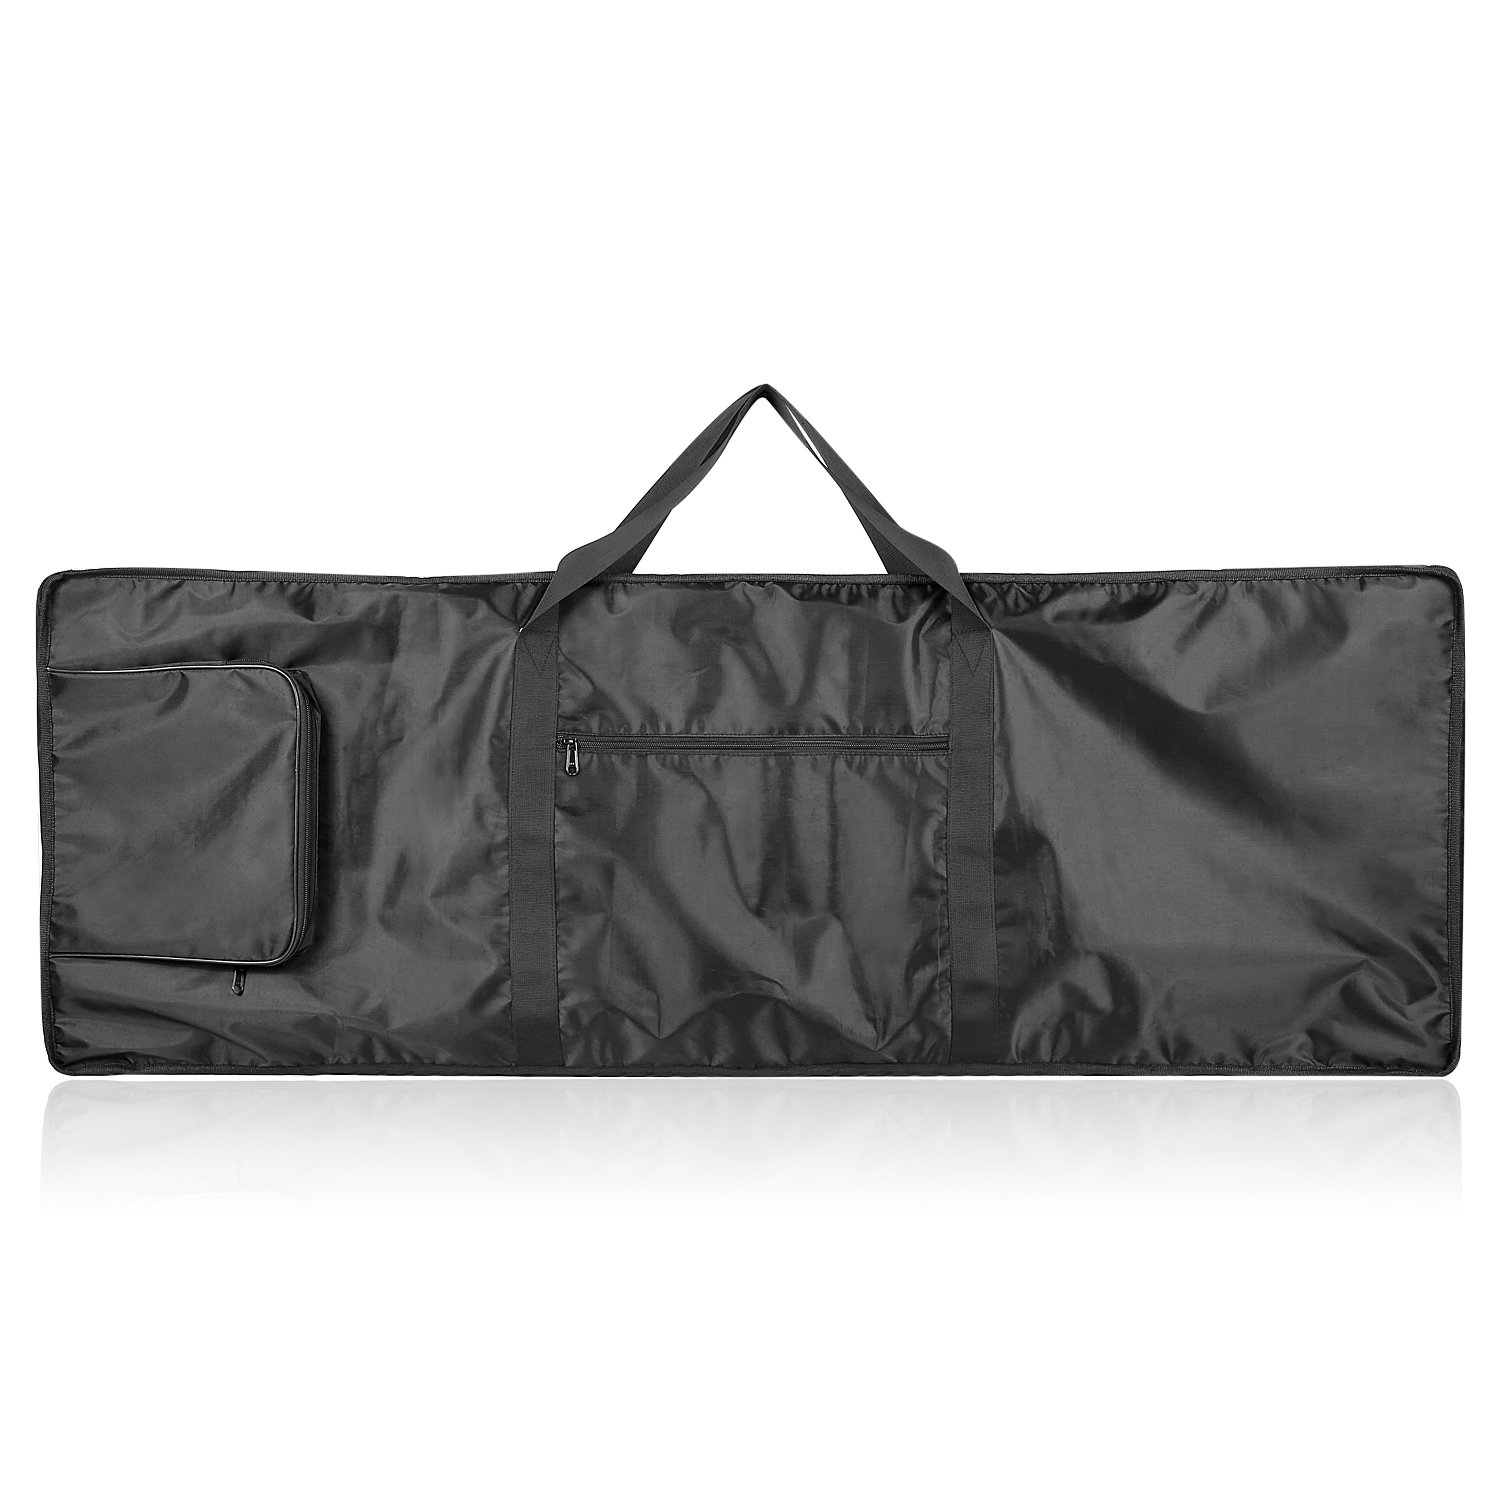 Neewer 88-Key Keyboard Bag with Extra Pockets for Electric Piano, Made of Durable and Waterproof Nylon, Adjustable and Portable Backpack Straps, Black Neewer® 40087431